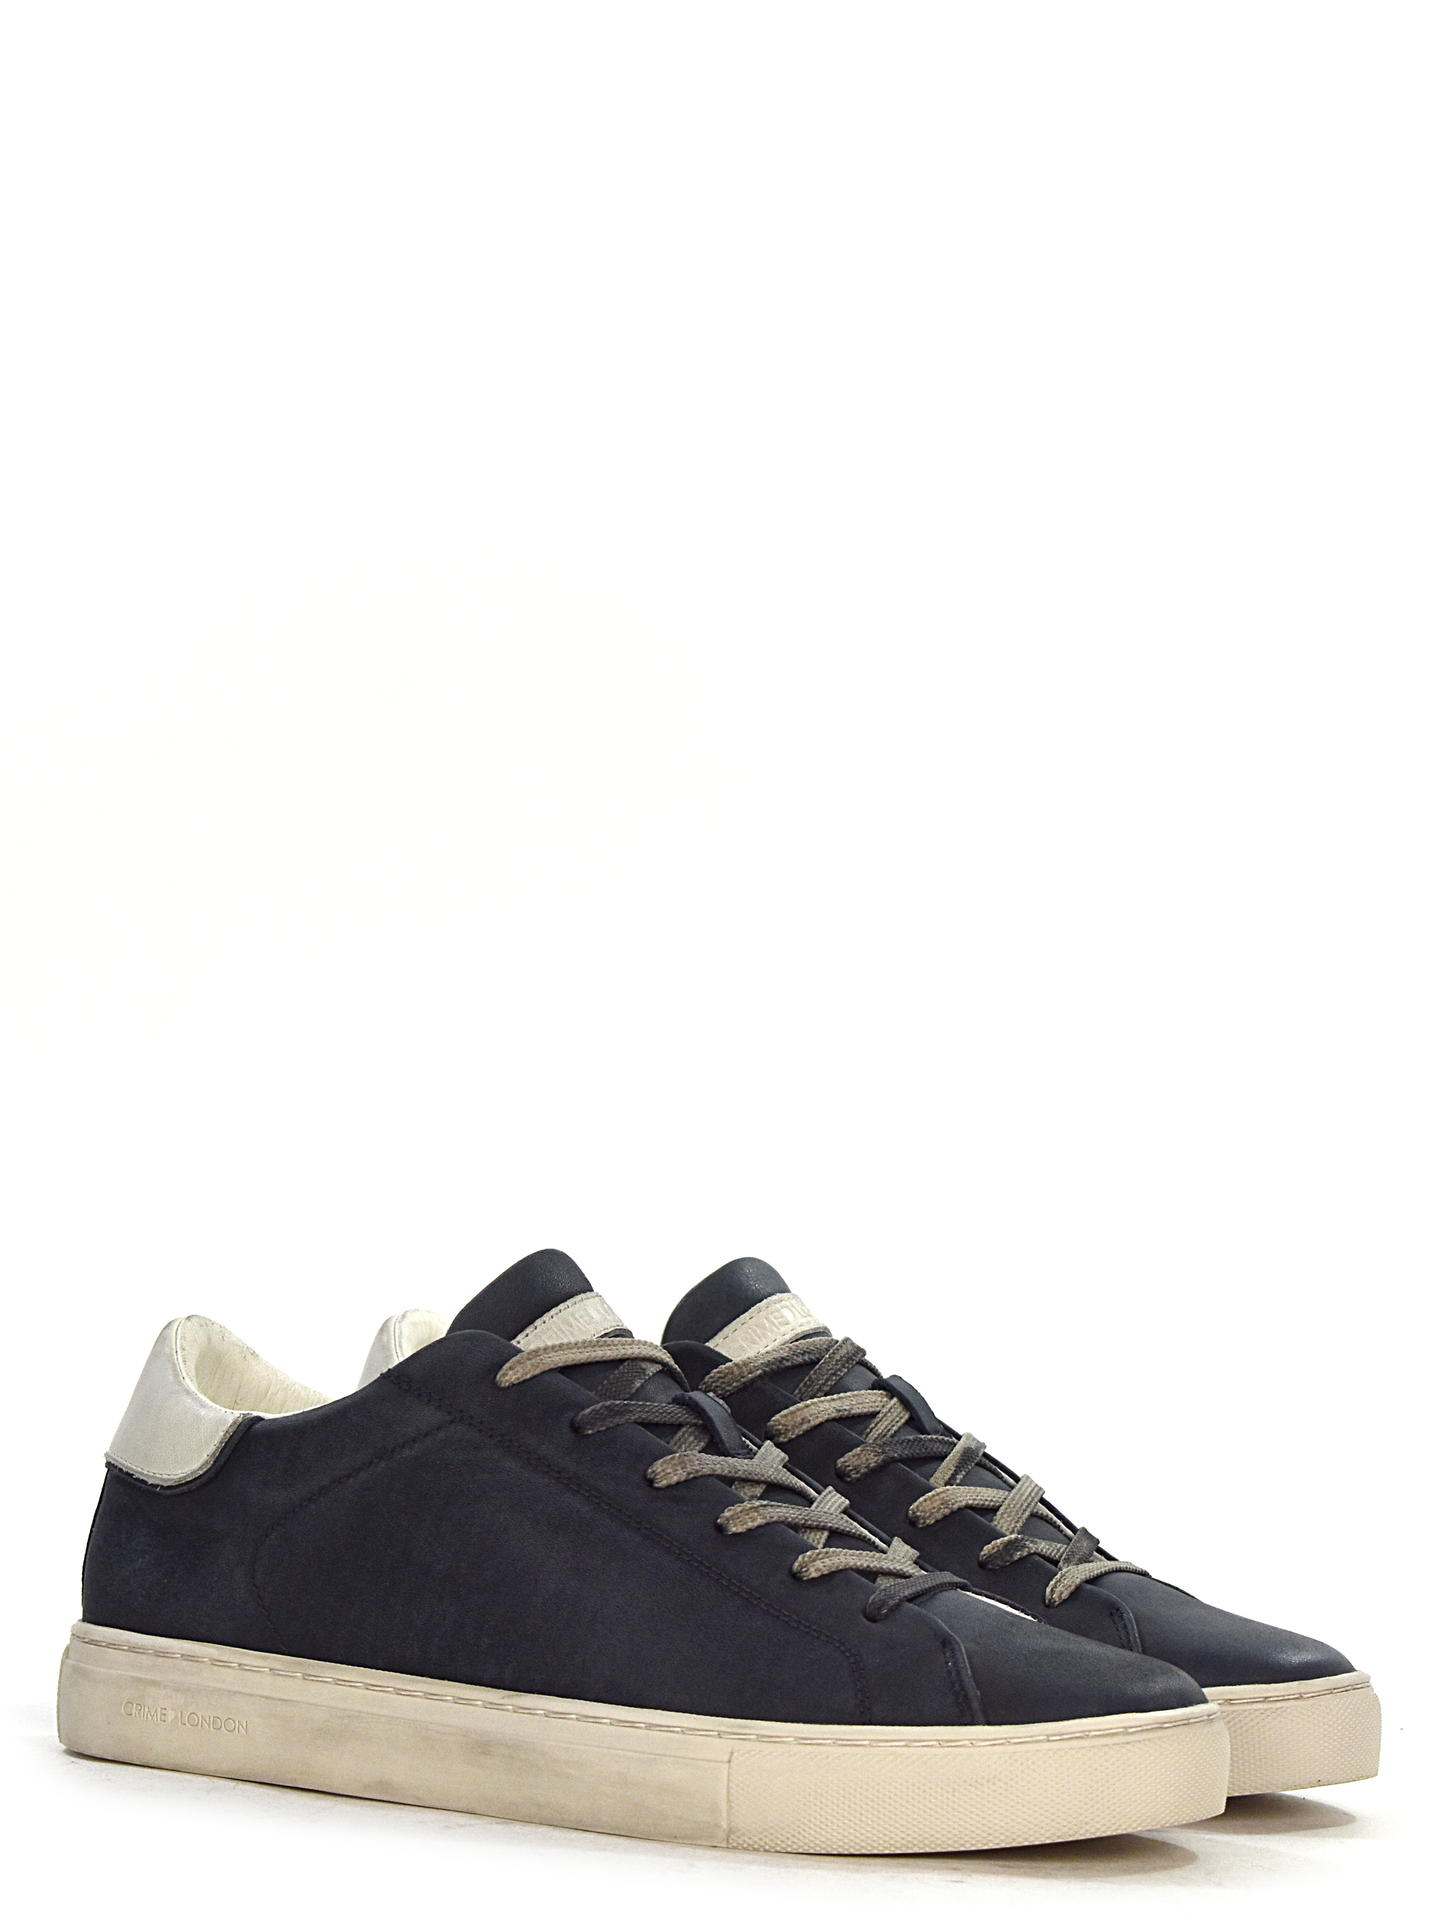 SNEAKERS CRIME LONDON 11543 BLUE